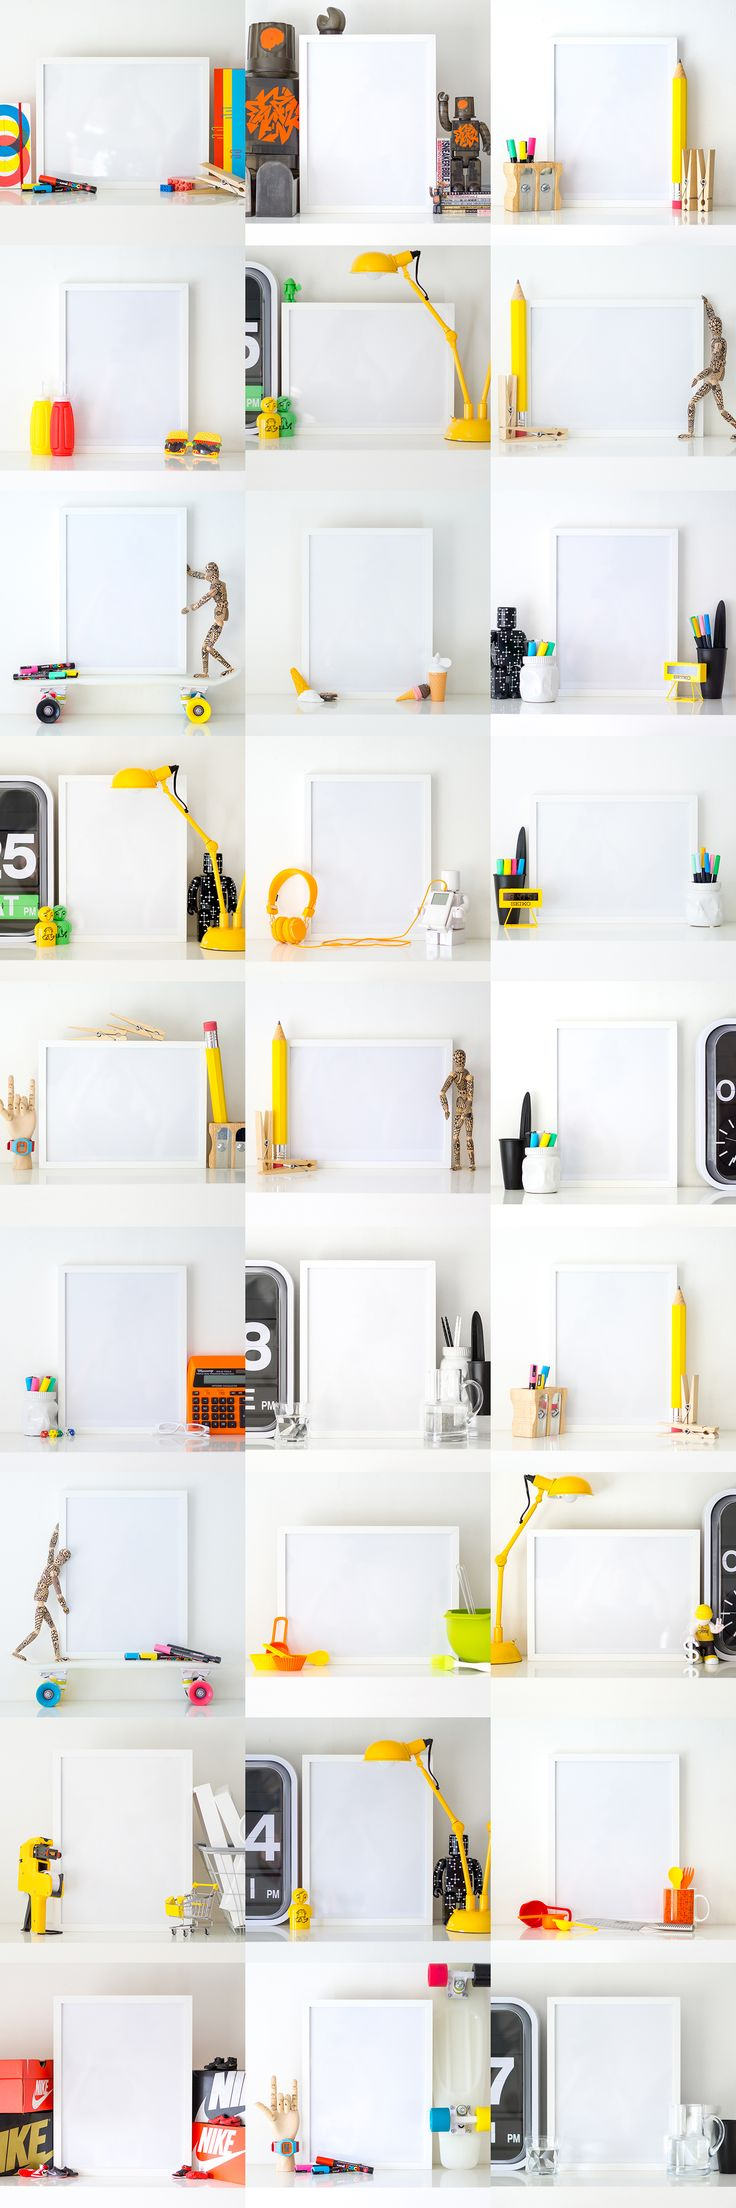 Poster design resources - Find This Pin And More On Free Design Resources By Kuukukk